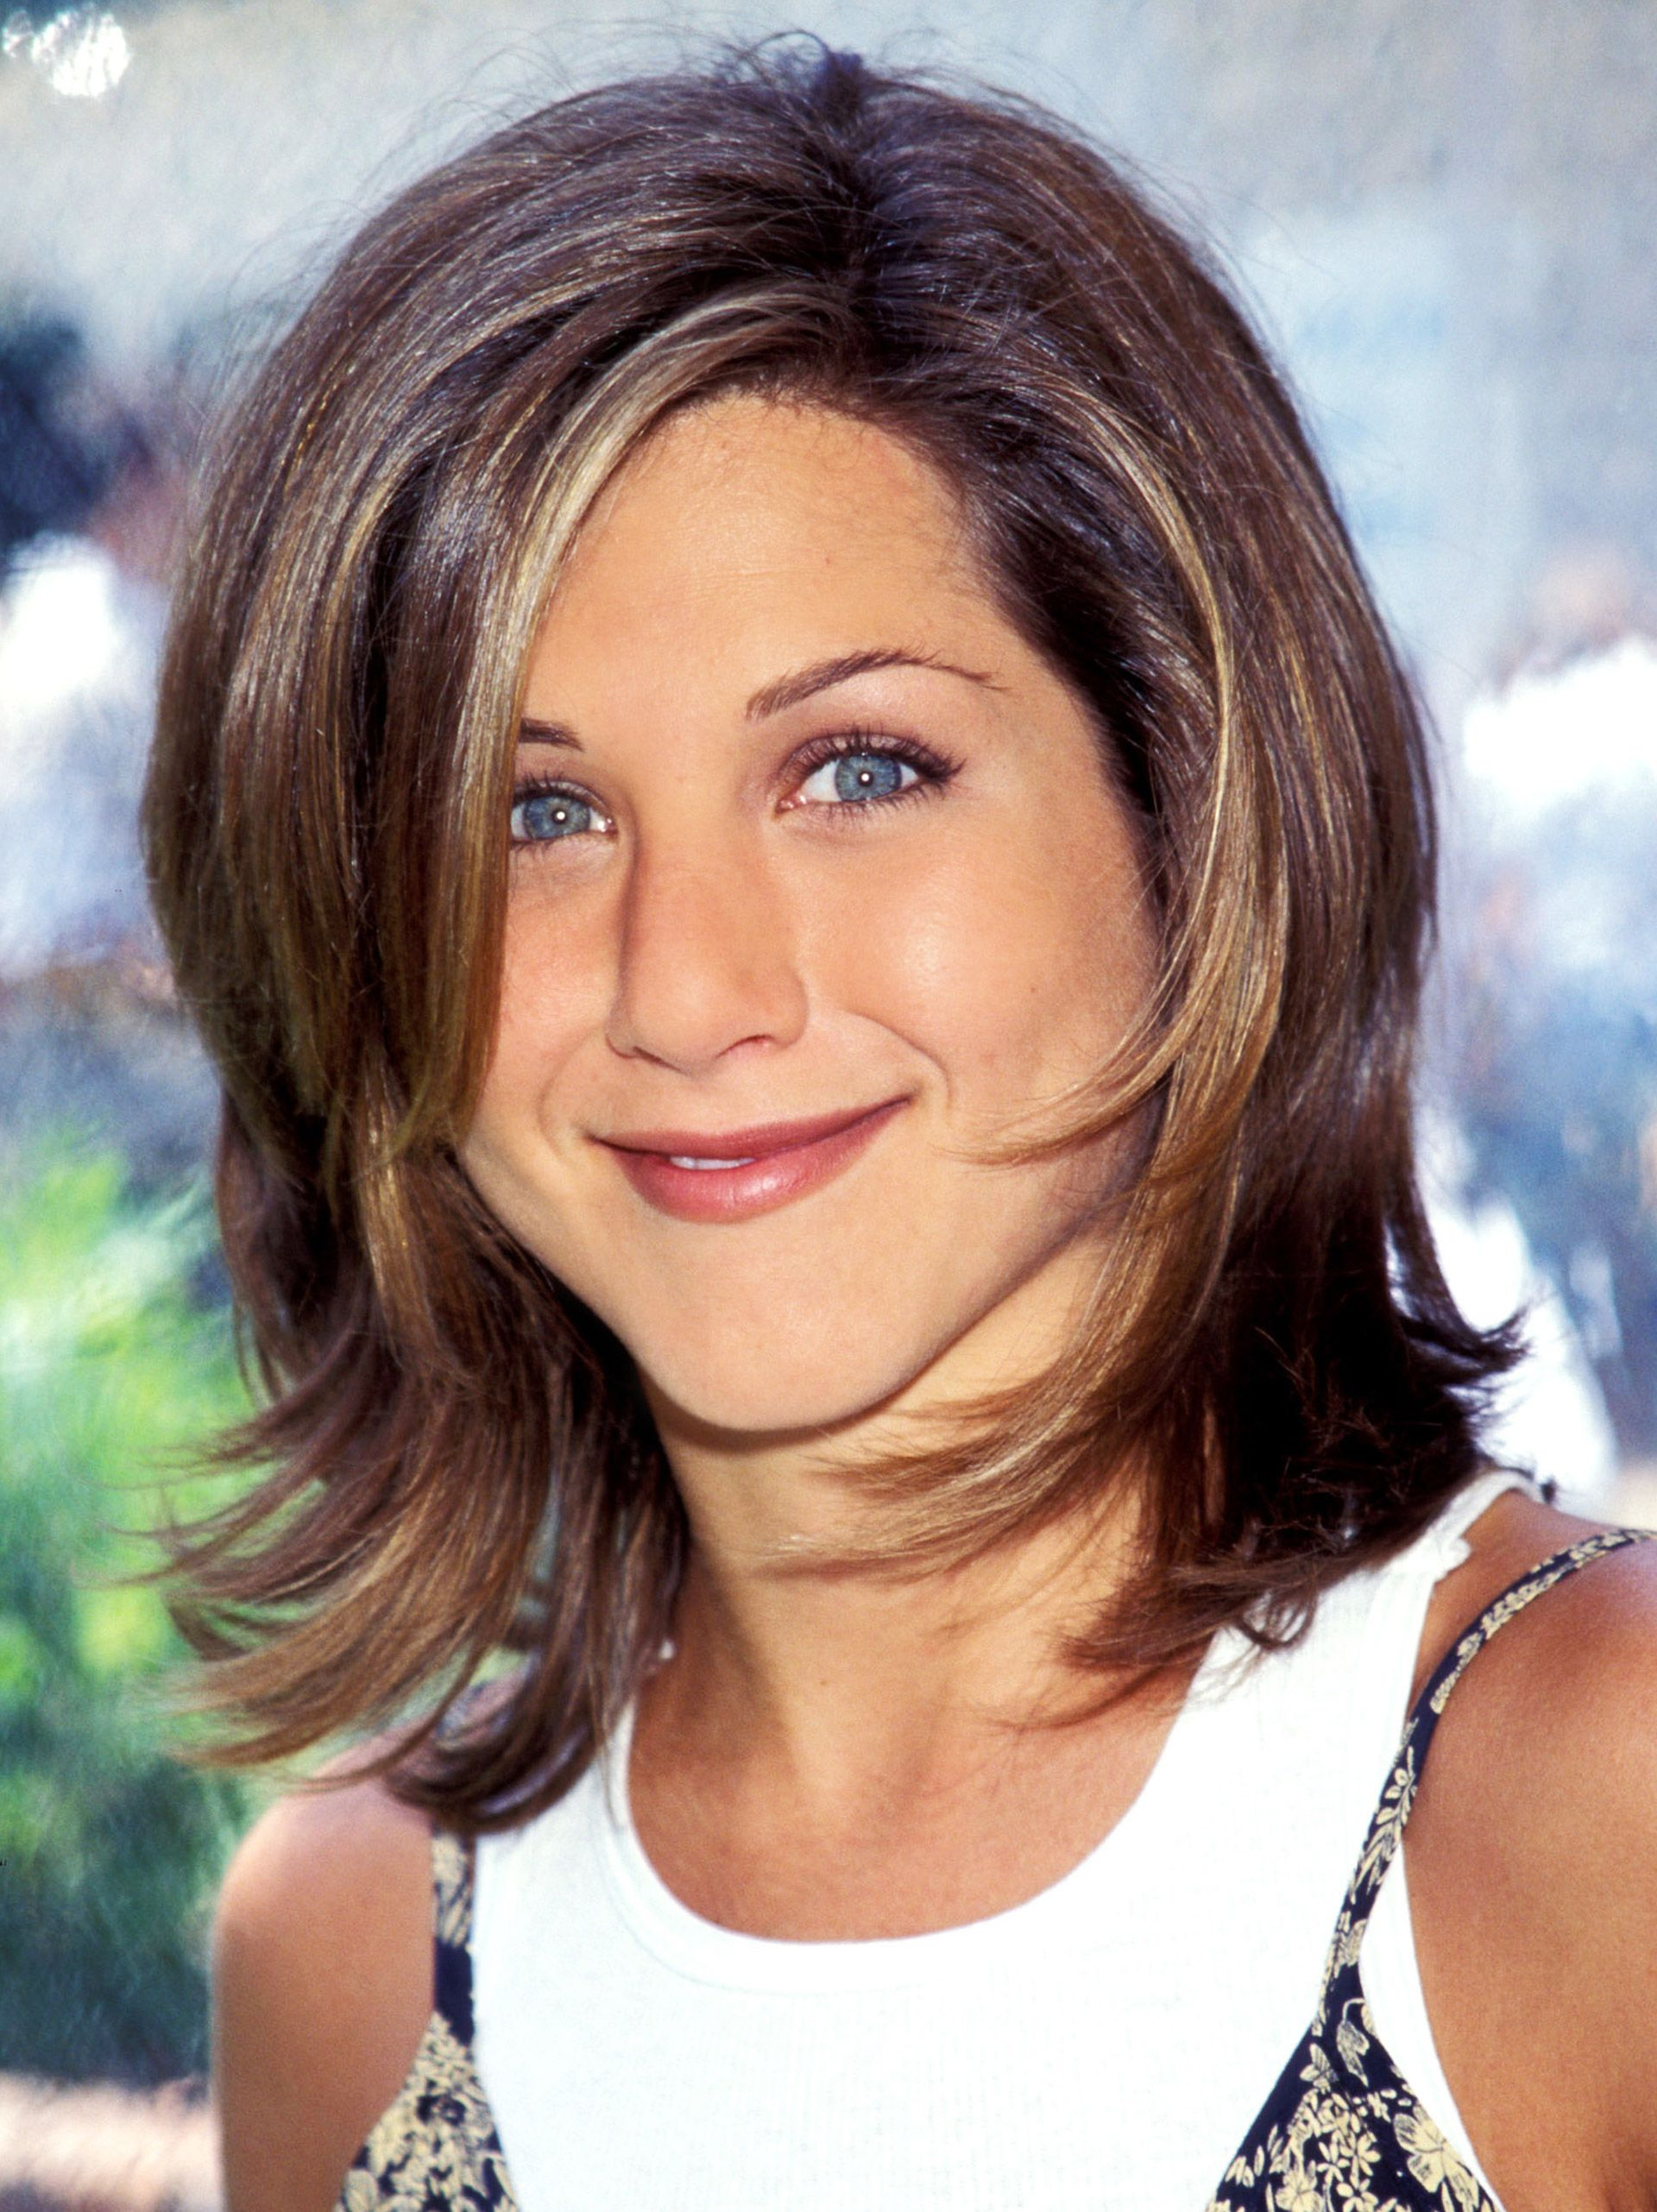 Jennifer Aniston Though She Now Wears Her Hair Long And Straight Is Best Known For The Rachel A Medium Length Layered Look Named After